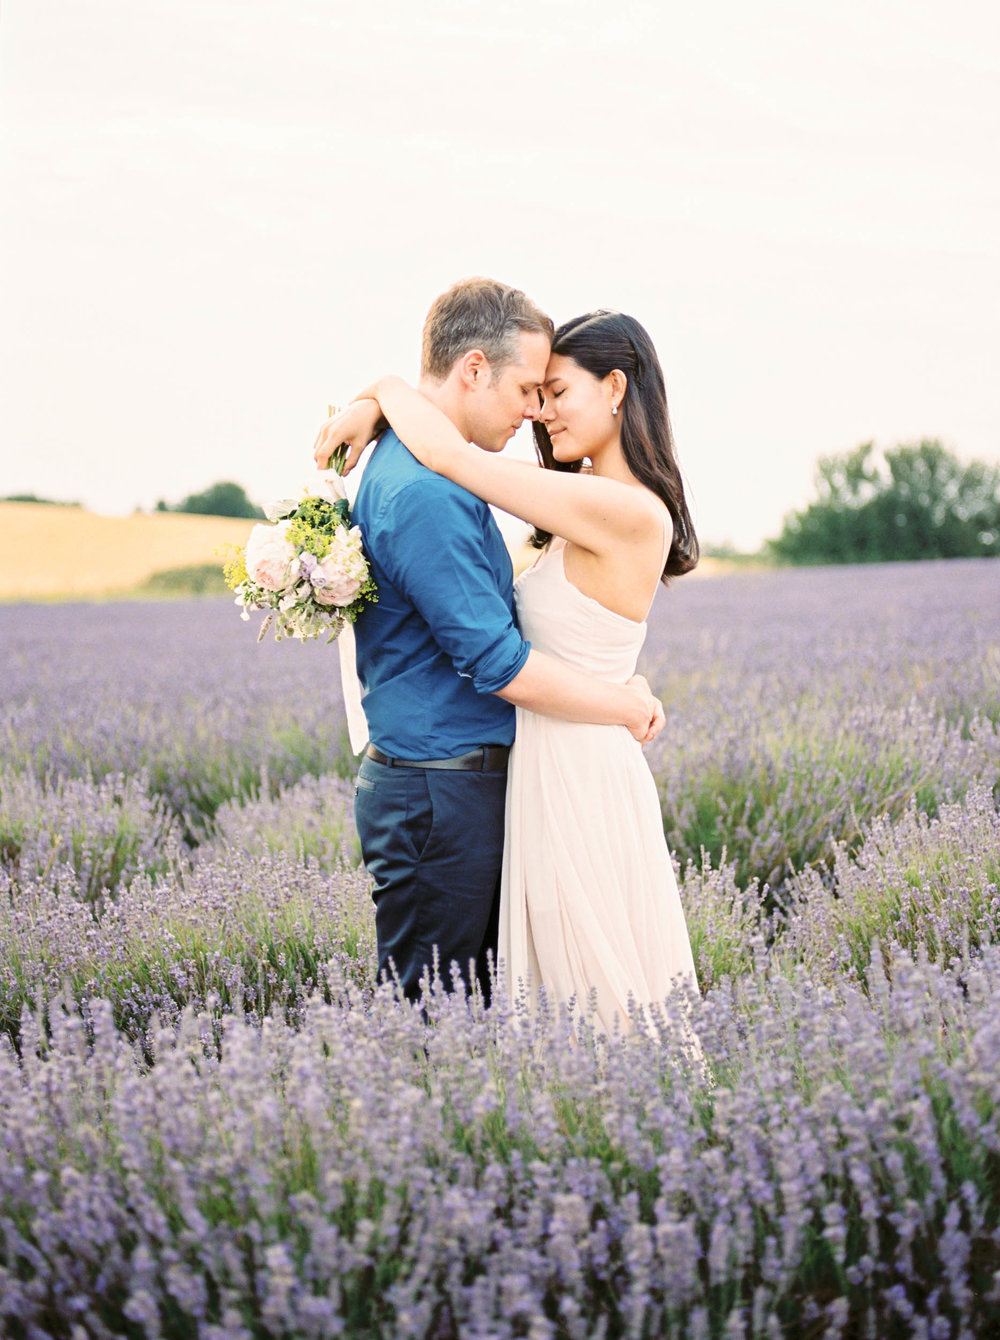 Amy O'Boyle Photography- Destination & UK Fine Art Film Wedding Photographer- Hitchin Lavender Engagement Shoot-21.jpg